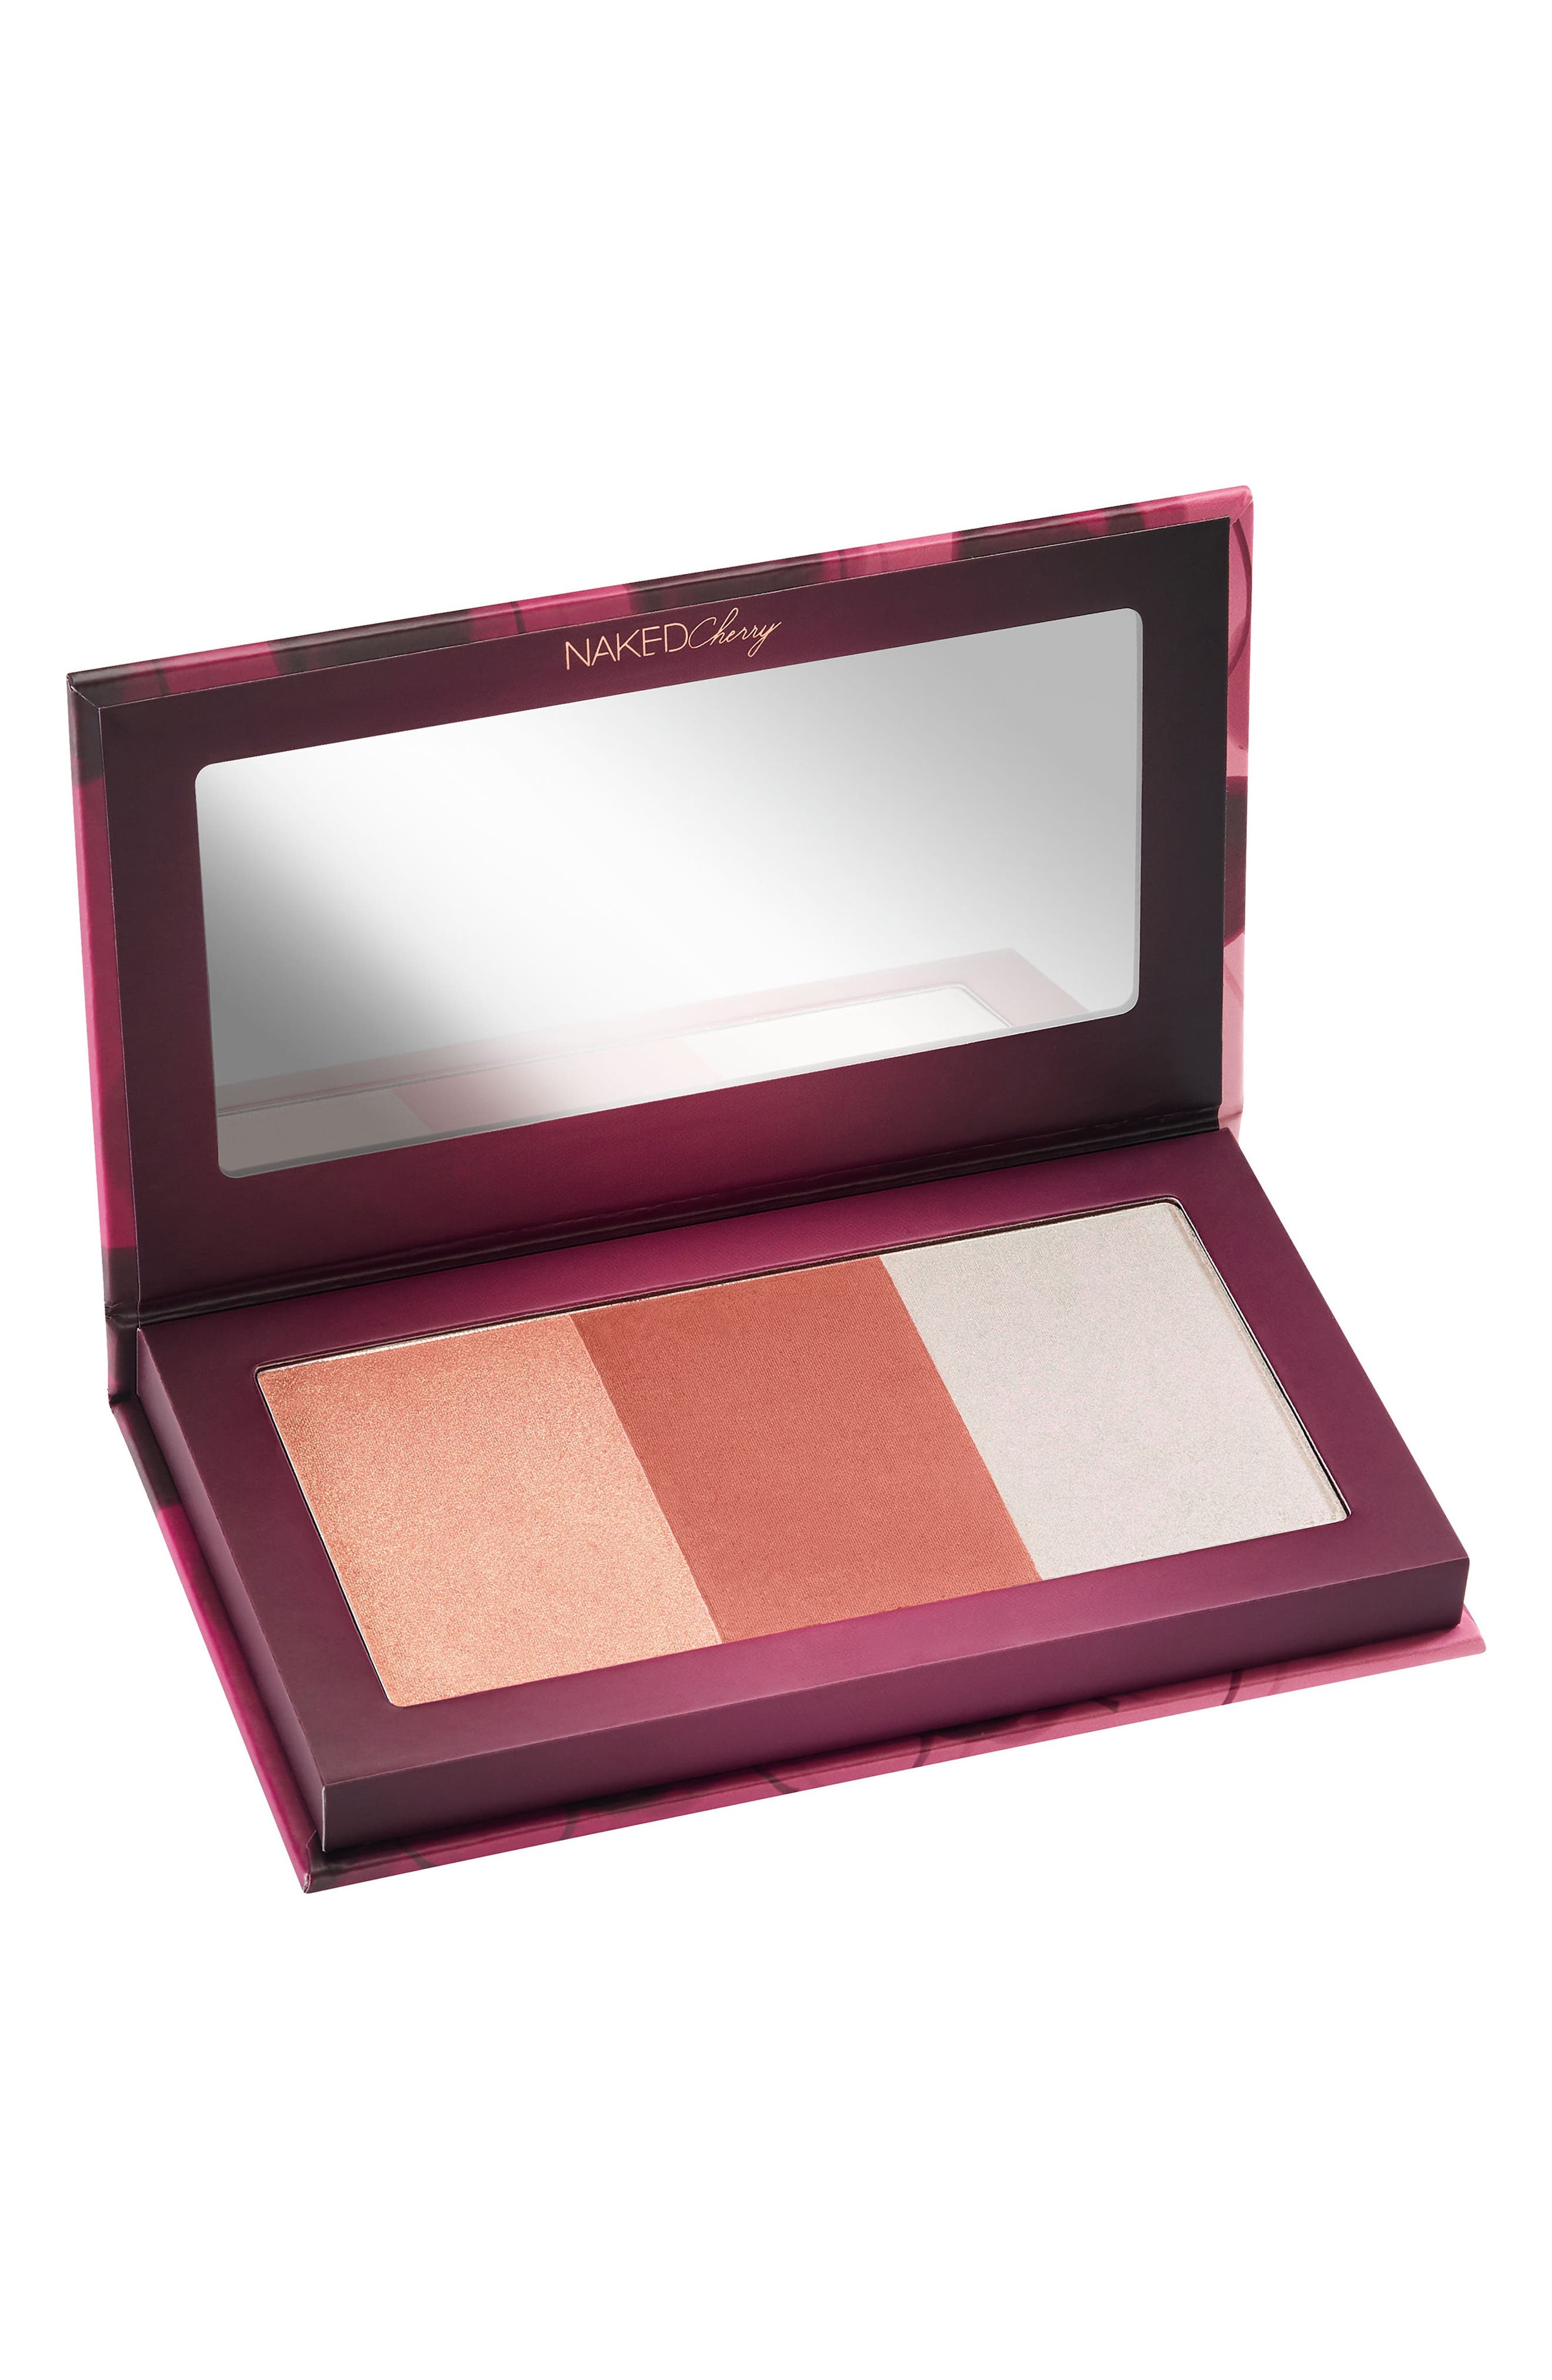 Naked Cherry Highlight and Blush Palette,                         Main,                         color, NO COLOR